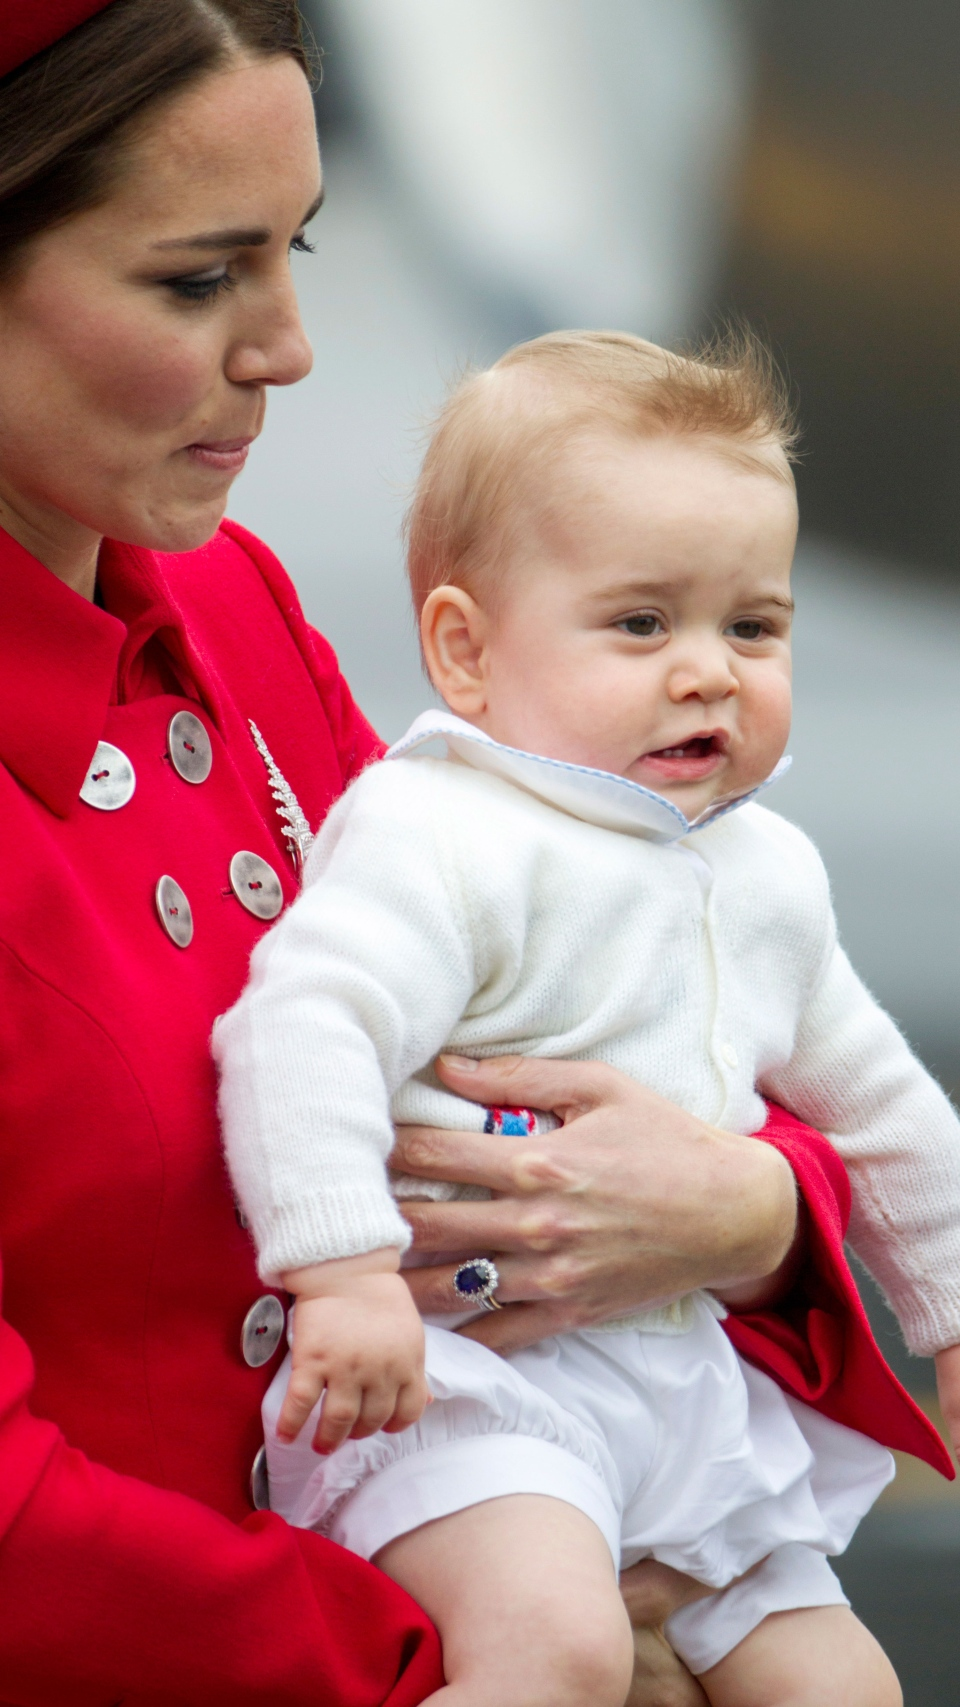 Catherine, Duchess of Cambridge holds Prince George while arriving for their visit to New Zealand at the International Airport, in Wellington, New Zealand, Monday, April 7, 2014. (SNPA /  David Rowland)